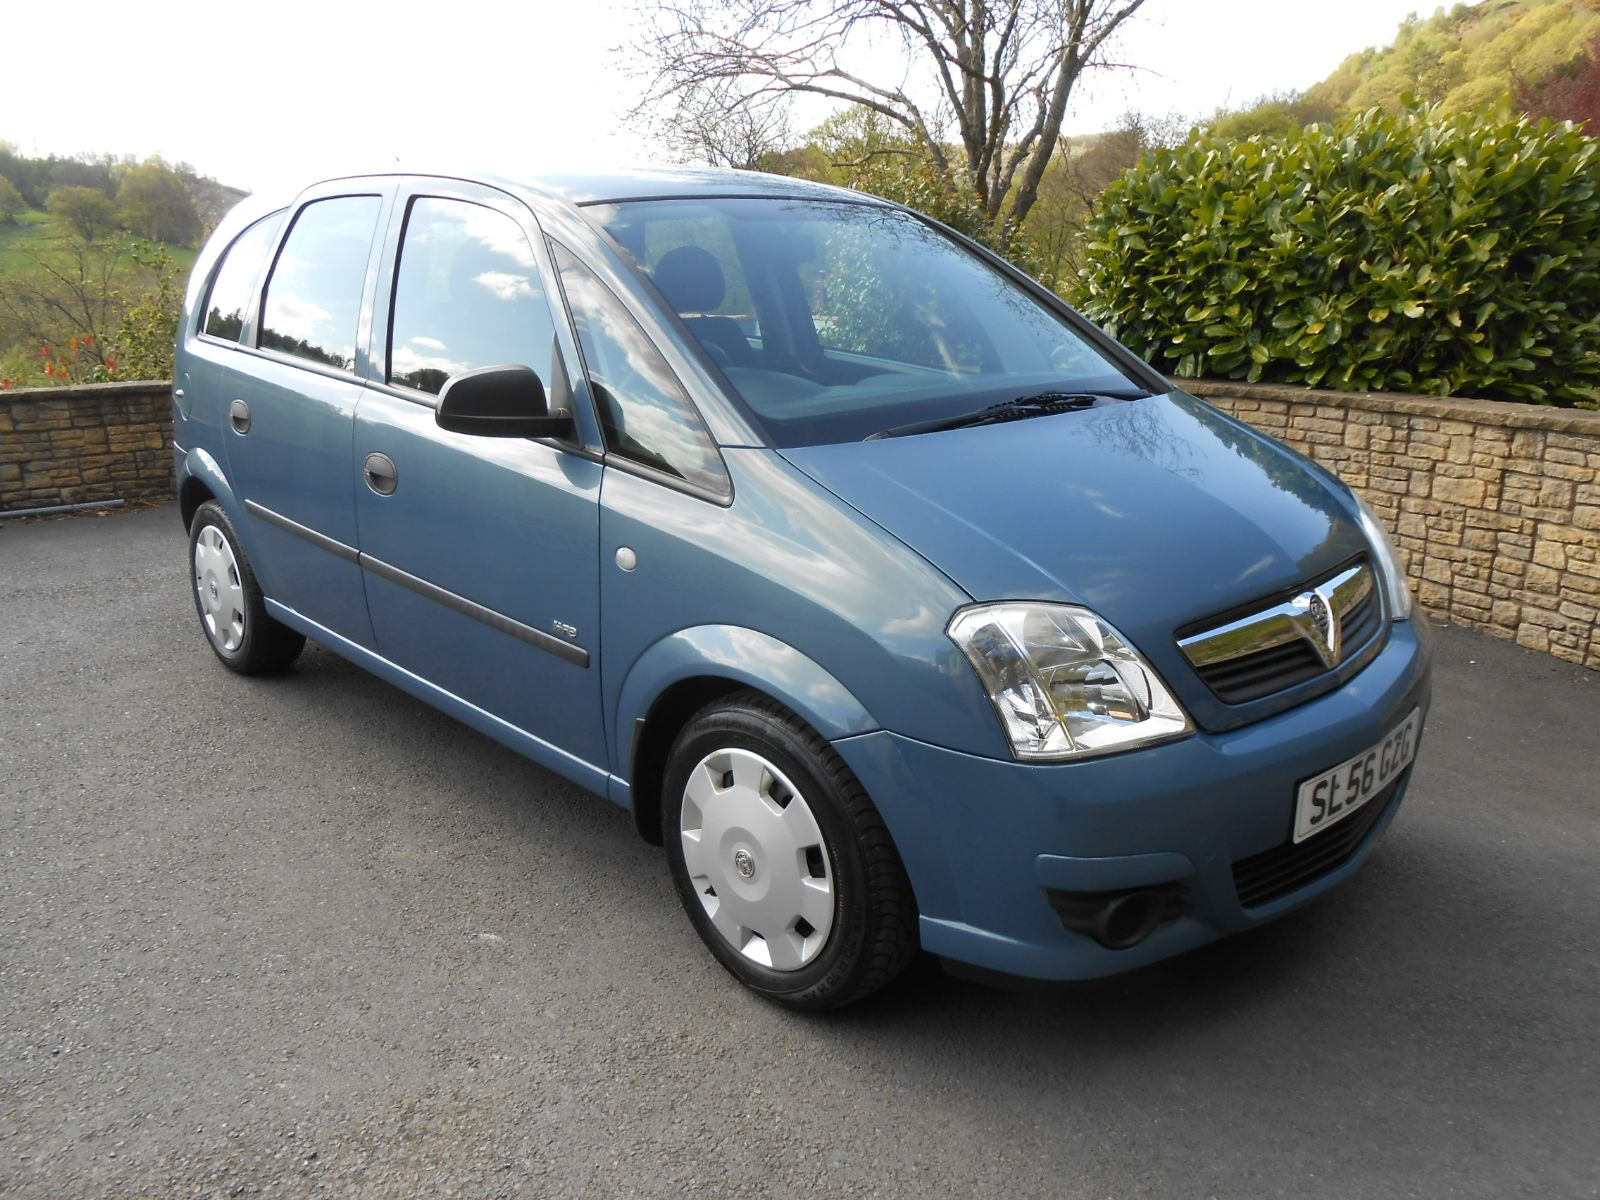 Personal Contract Hire >> Vauxhall Meriva 1.4 Life 5 Door car for sale Llanidloes Powys Mid Wales Kevin Jones Cars - Used ...